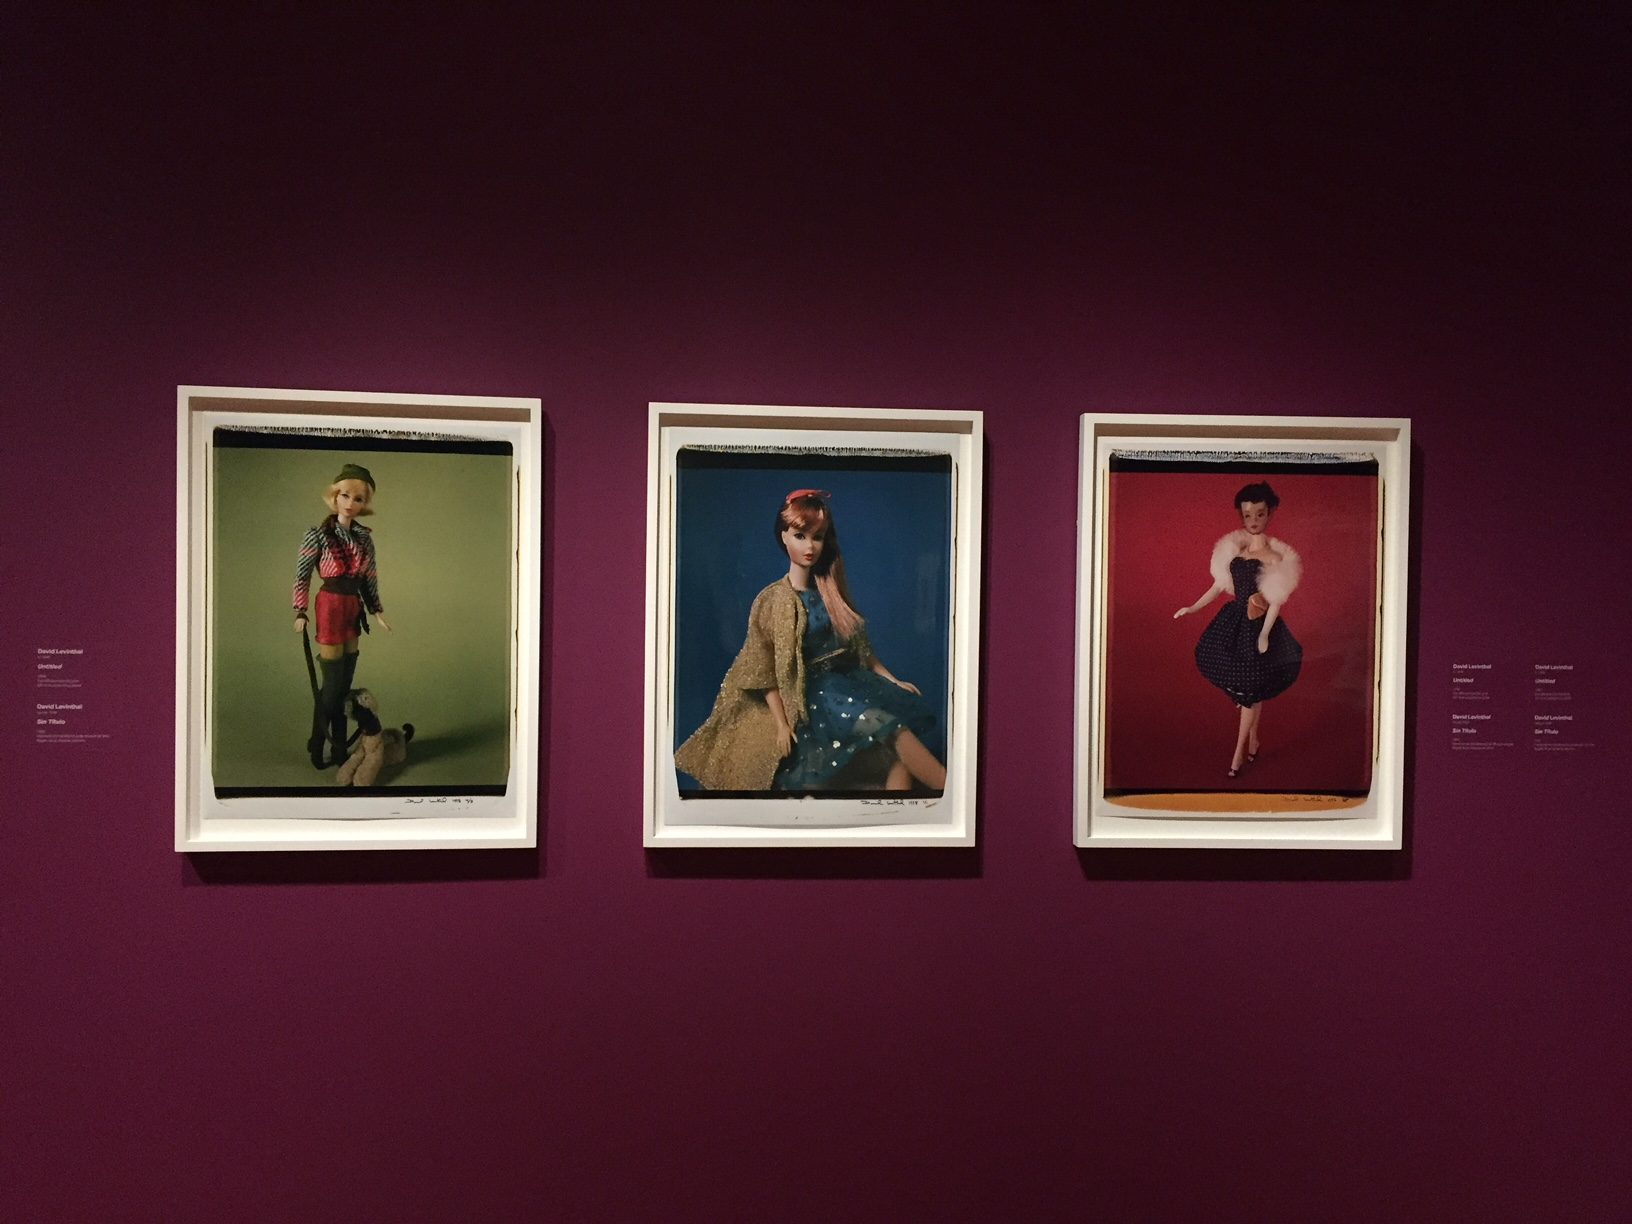 From David Levinthal: Barbie and Baseball - on view now through August 2019 at Crystal Bridges